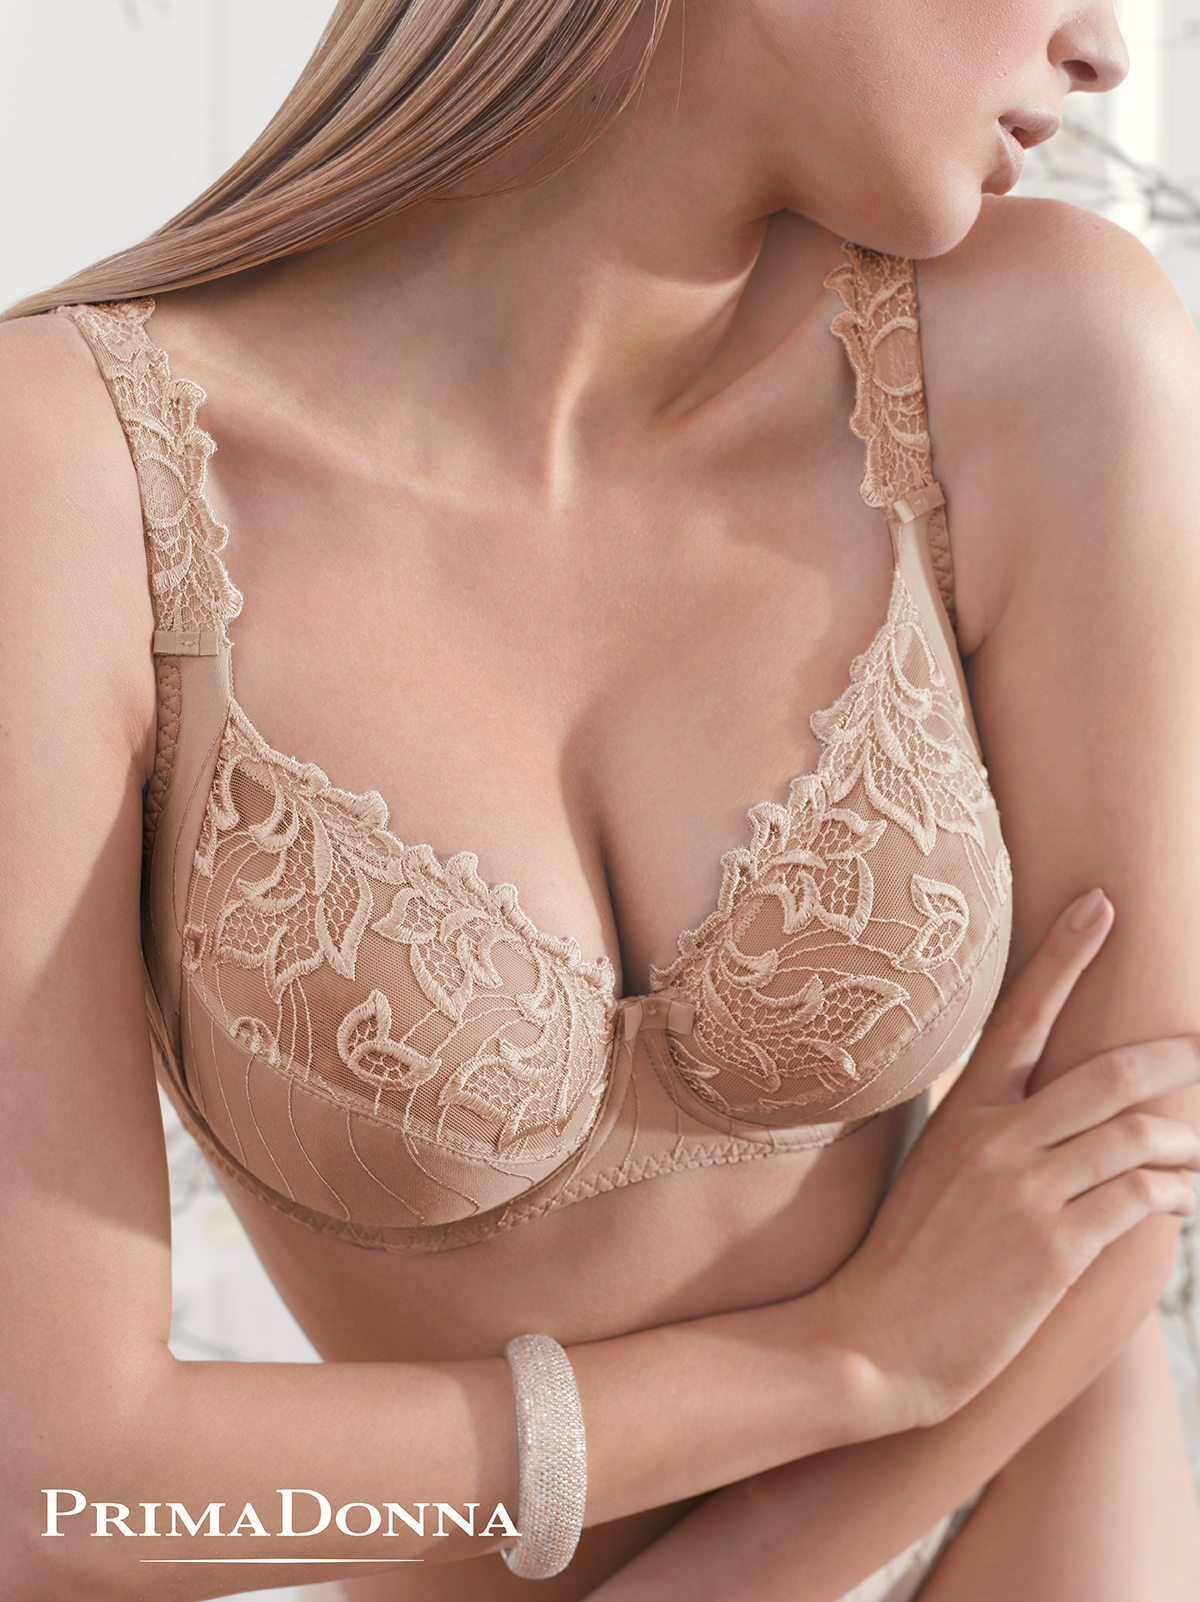 prima donna lingerie 39 s deauville bra with free uk delivery free international delivery. Black Bedroom Furniture Sets. Home Design Ideas